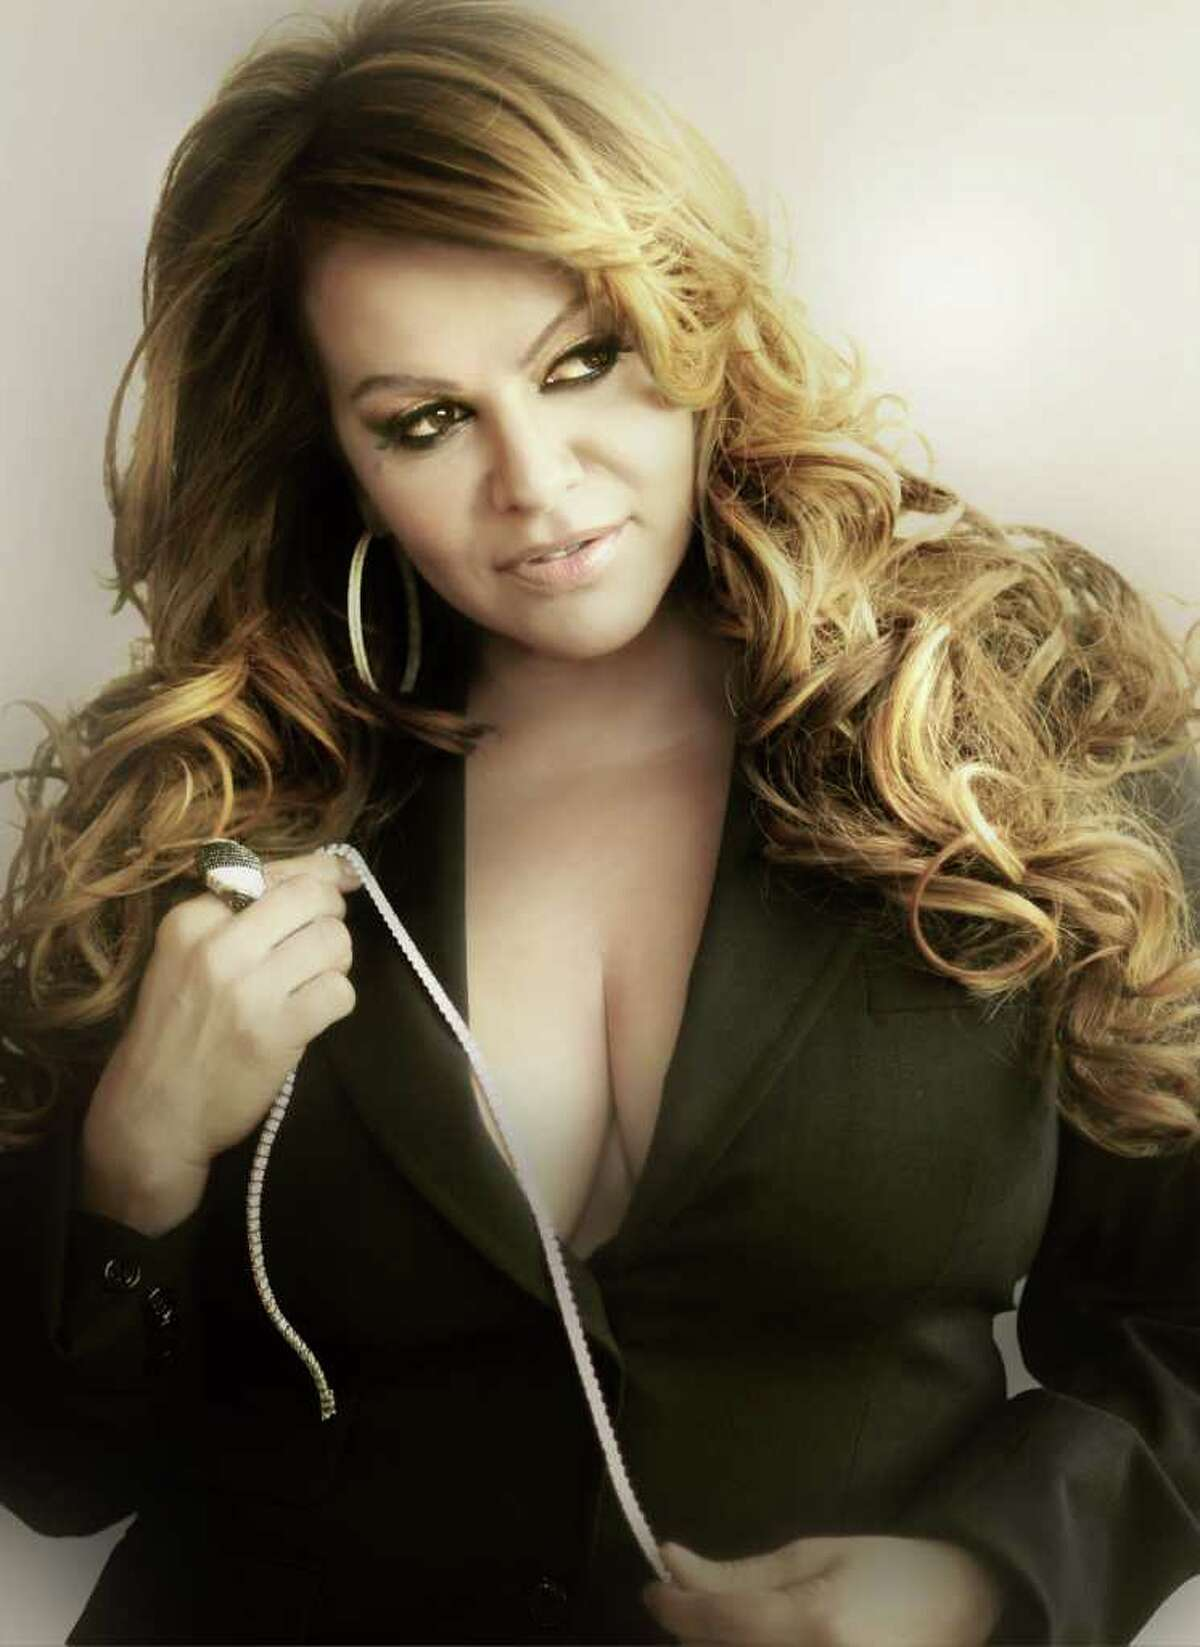 Dec. 9, 2012: Mexican American star Jenni Rivera and six others were killed when their Learjet crashed in rugged territory following a concert.